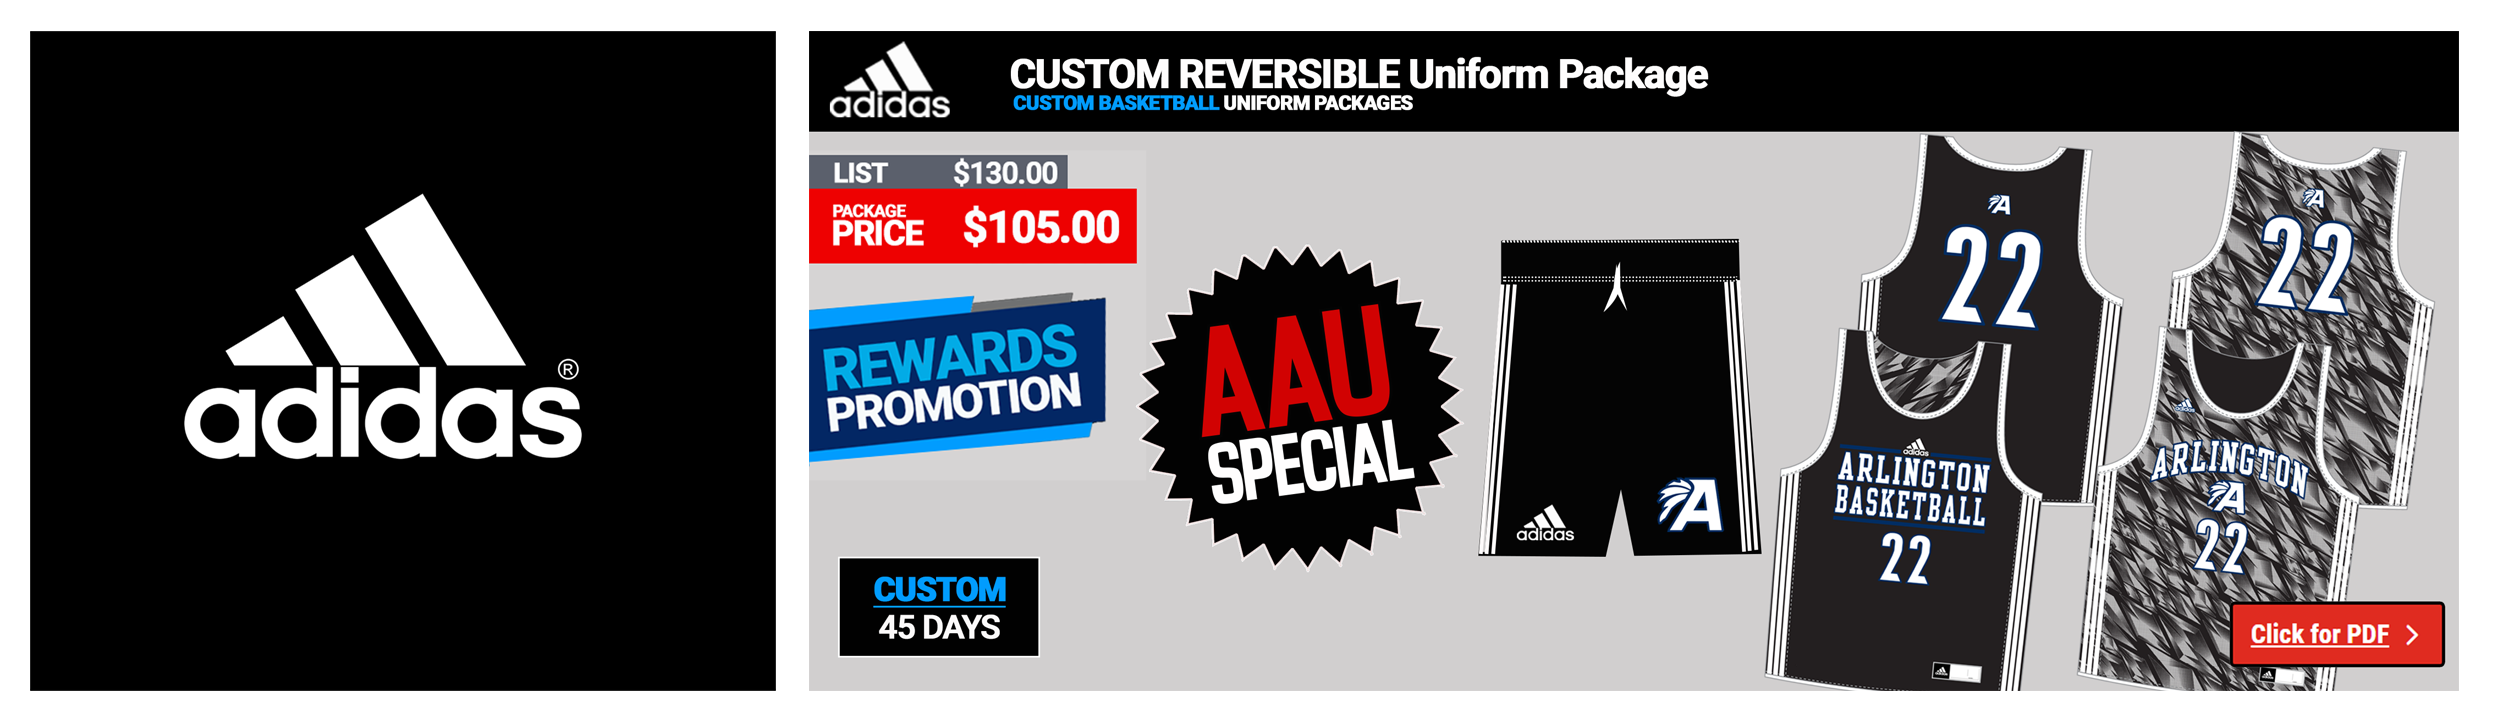 Adidas Custom Reversible Basketball Uniform Packages